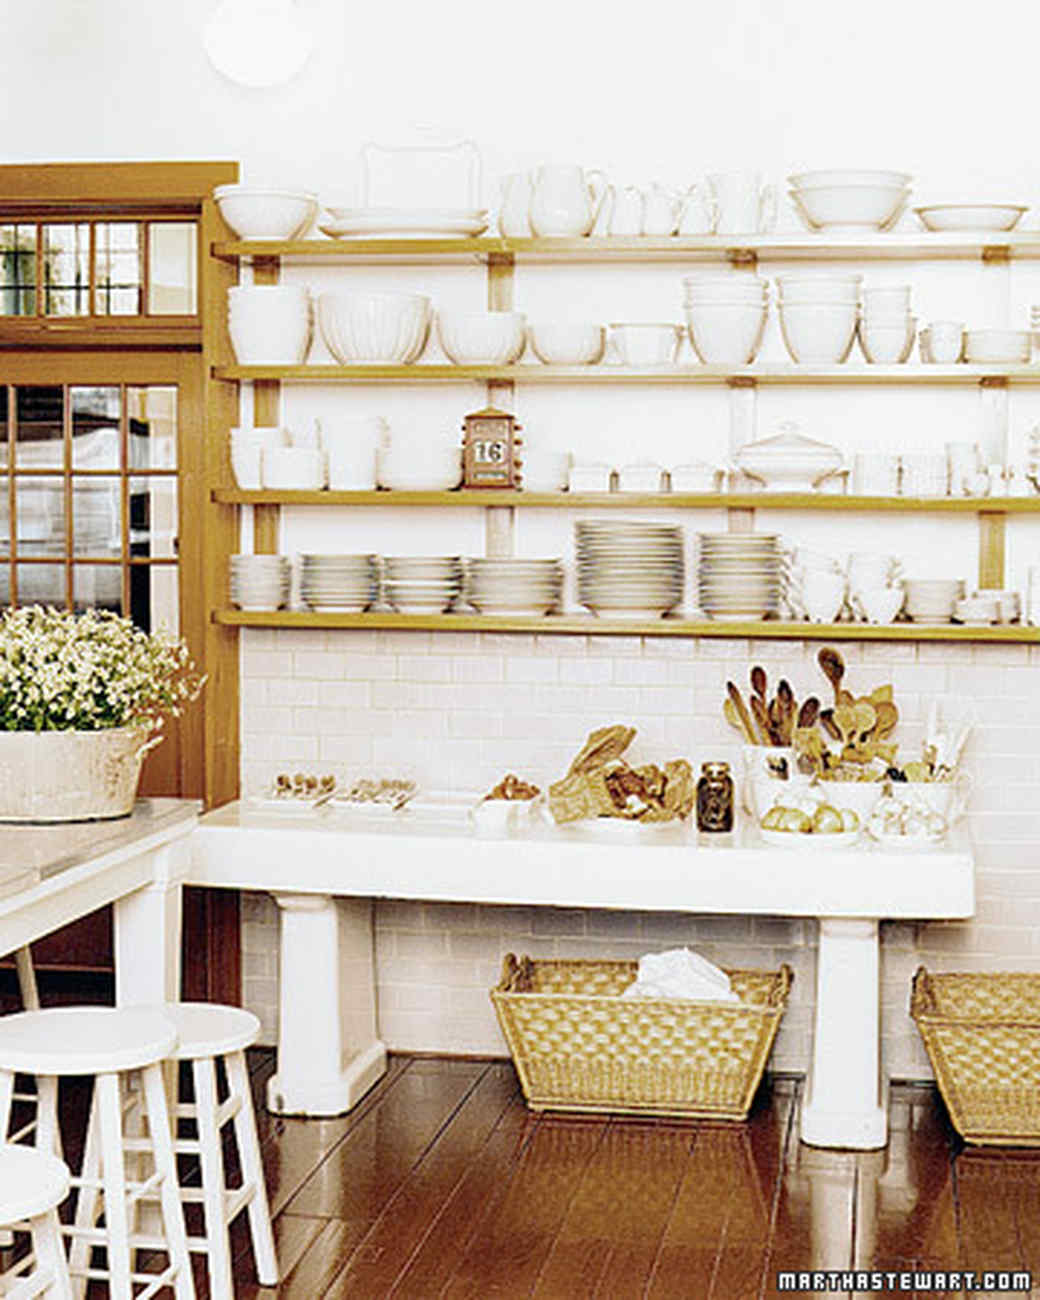 Marthas Skylands Kitchen Martha Stewart